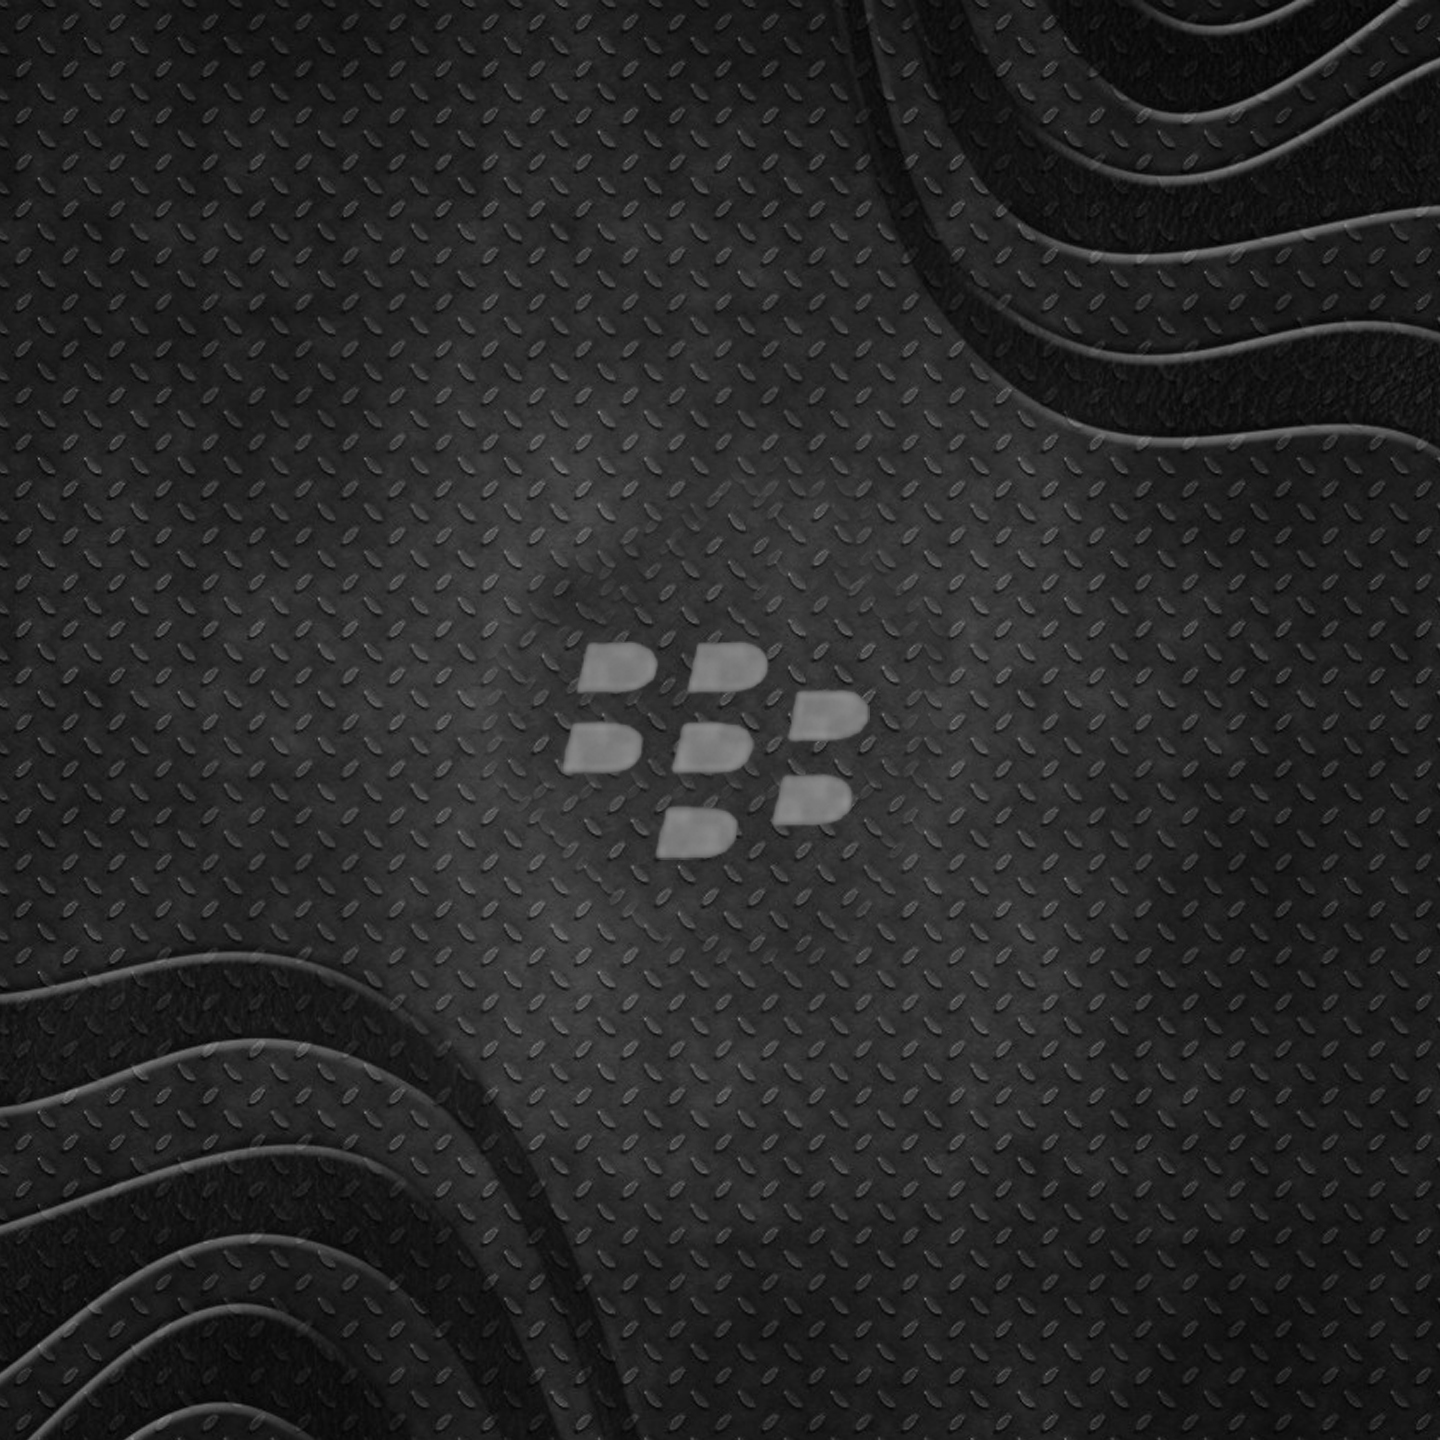 Free Wallpapers For Blackberry Passport: Free Wallpapers For BlackBerry Passport